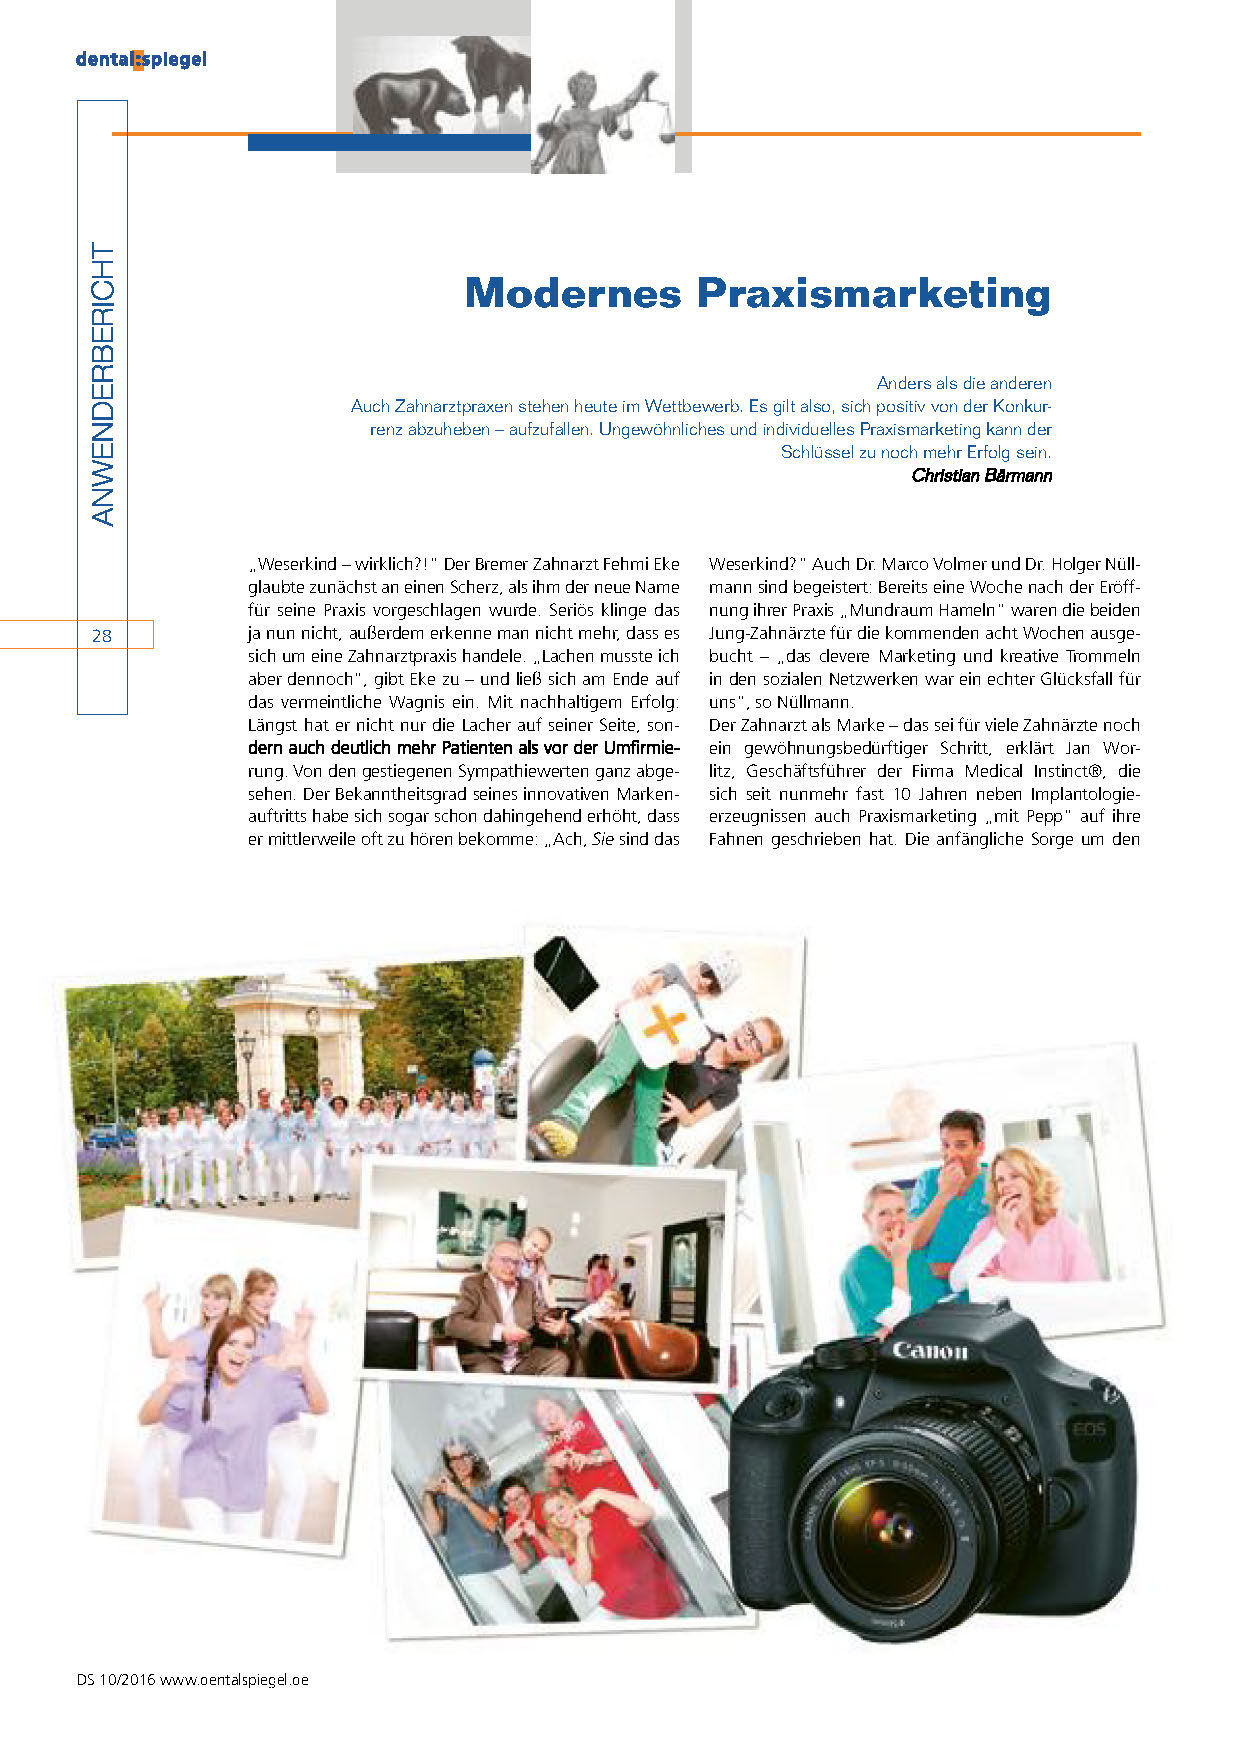 Dental Spiegel – Modernes Praxismarketing